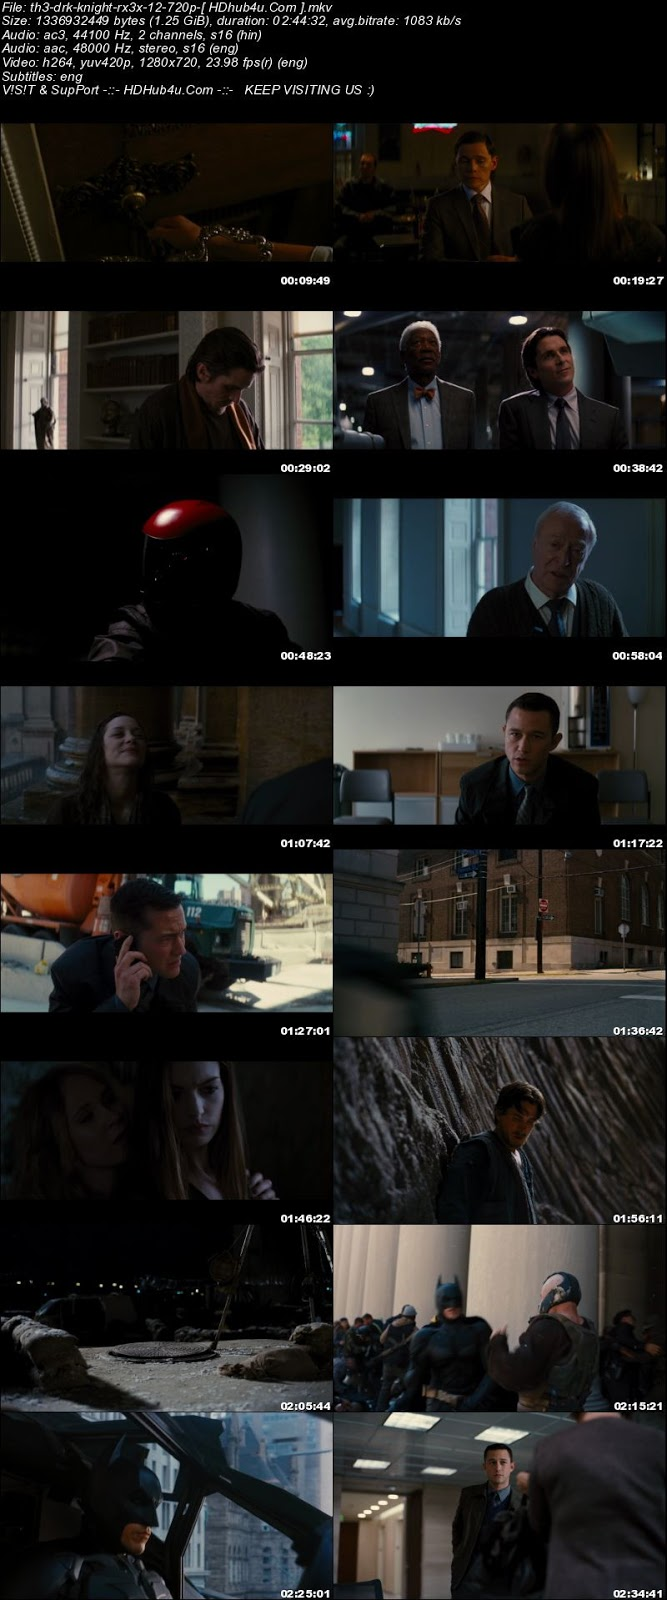 the dark knight rises download in 480p